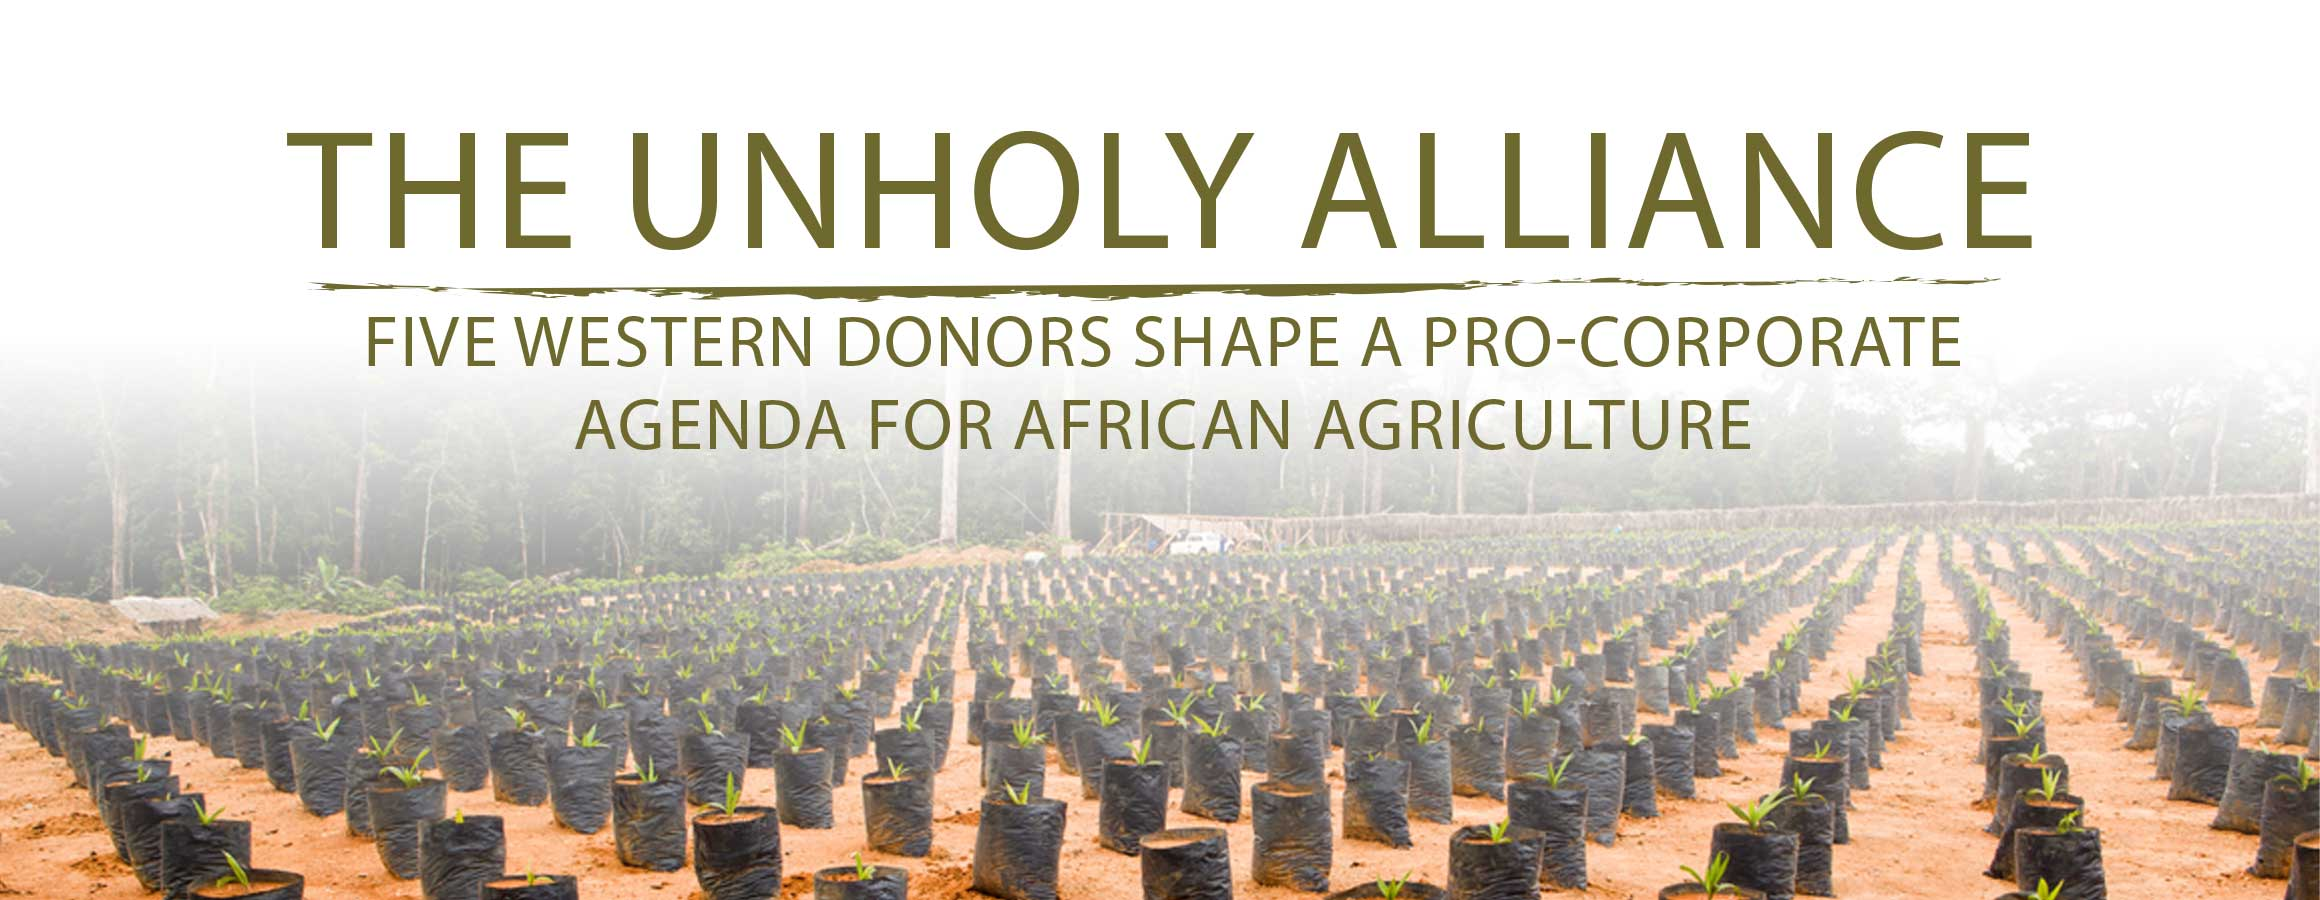 The Unholy Alliance, Five Western Donors Shape a Pro-Corporate Agenda for African Agriculture